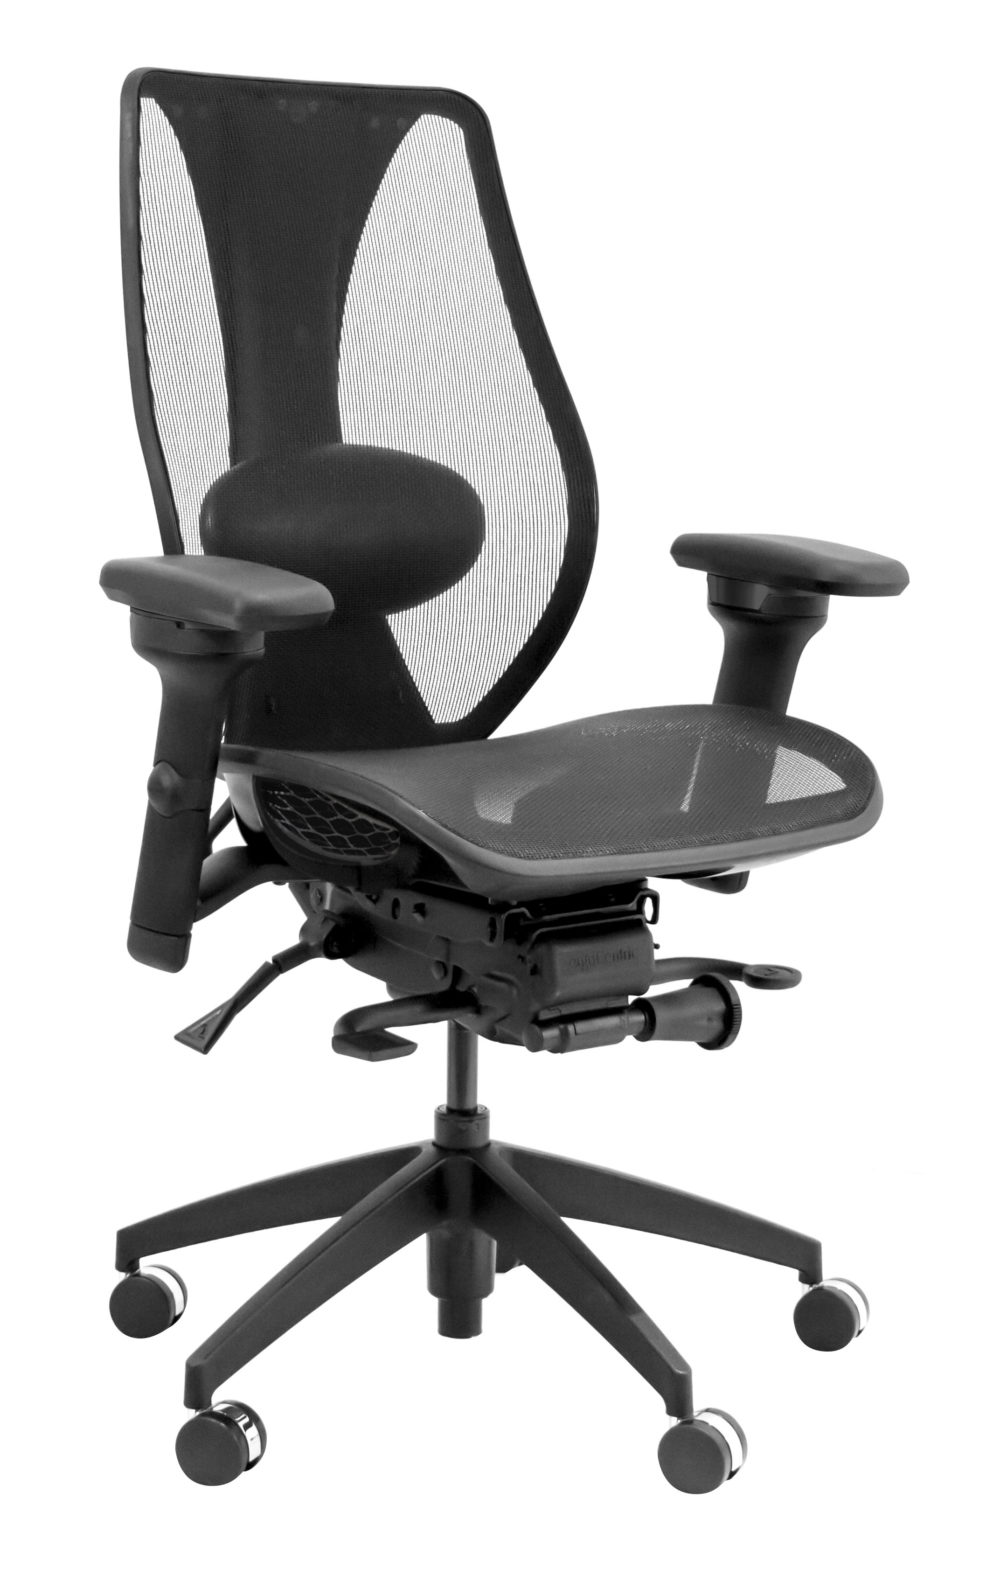 TCentric Hybrid Ergonomic Chair Buy Rite Business